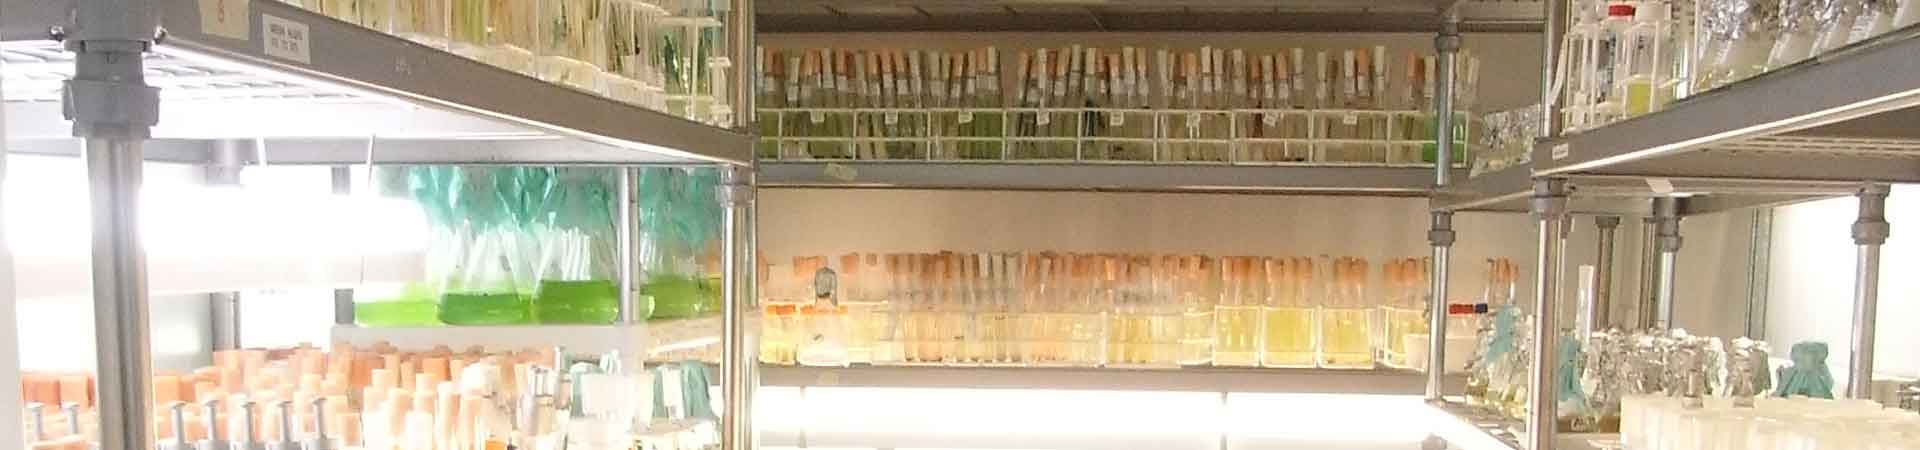 Picture from inside one of the walk-in fridges containing microalgae cultures